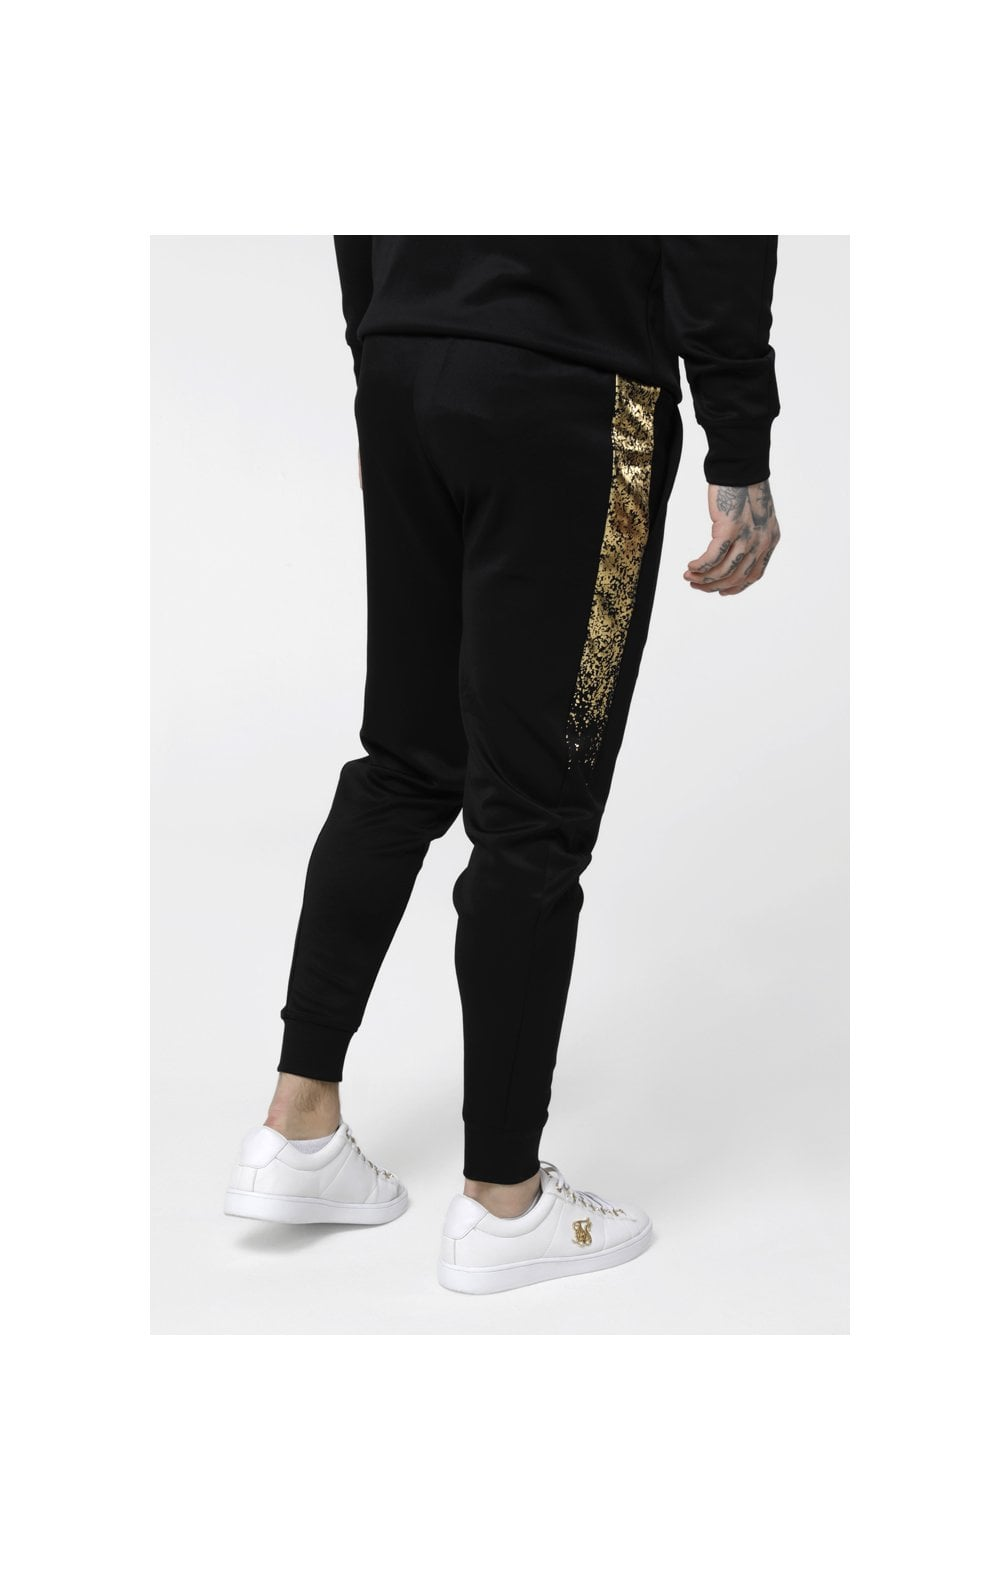 SikSilk Cuffed Cropped Foil Fade Panel Pants - Black & Gold (3)